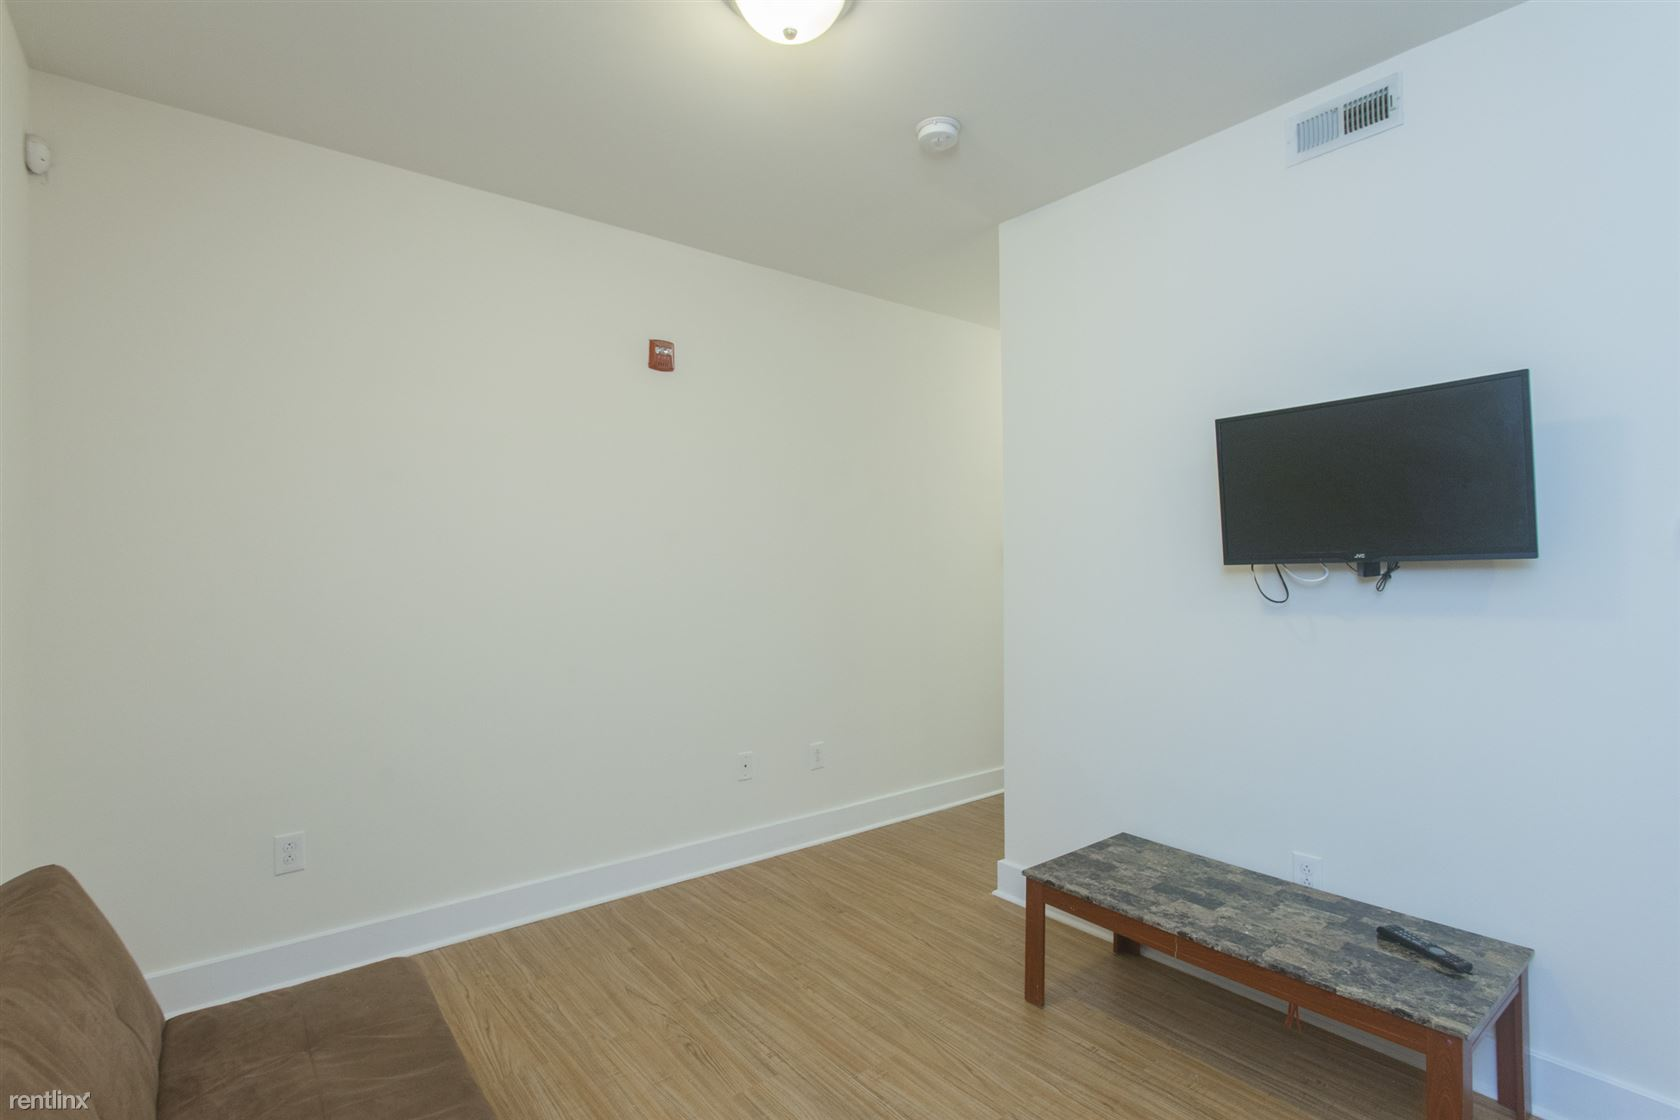 3835-37 HAMILTON ST Unit 11, Philadelphia, PA - $550 USD/ month